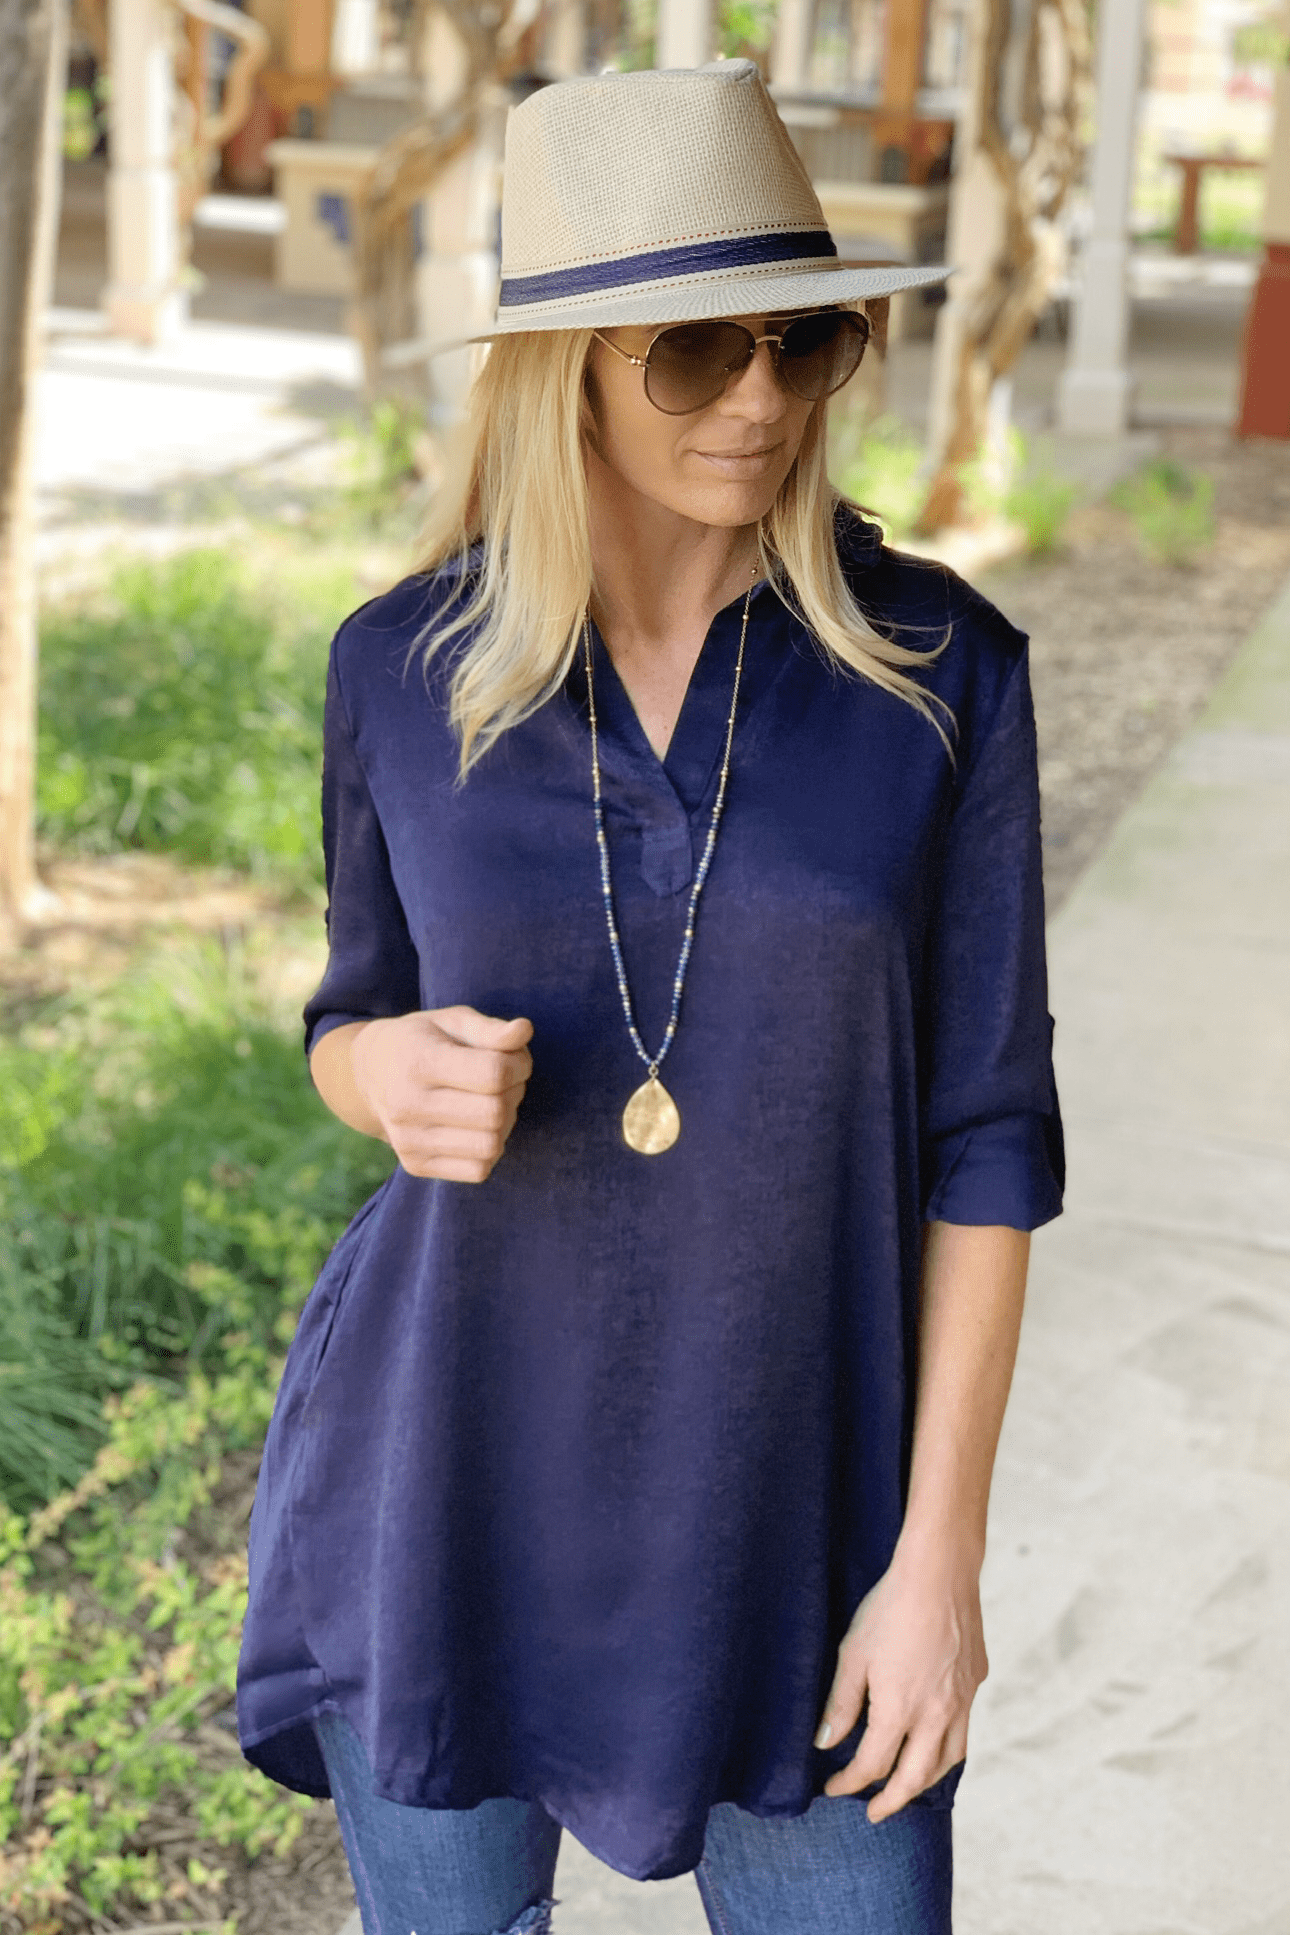 UP YOUR STYLE TUNIC DRESS-NAVY - Infinity Raine